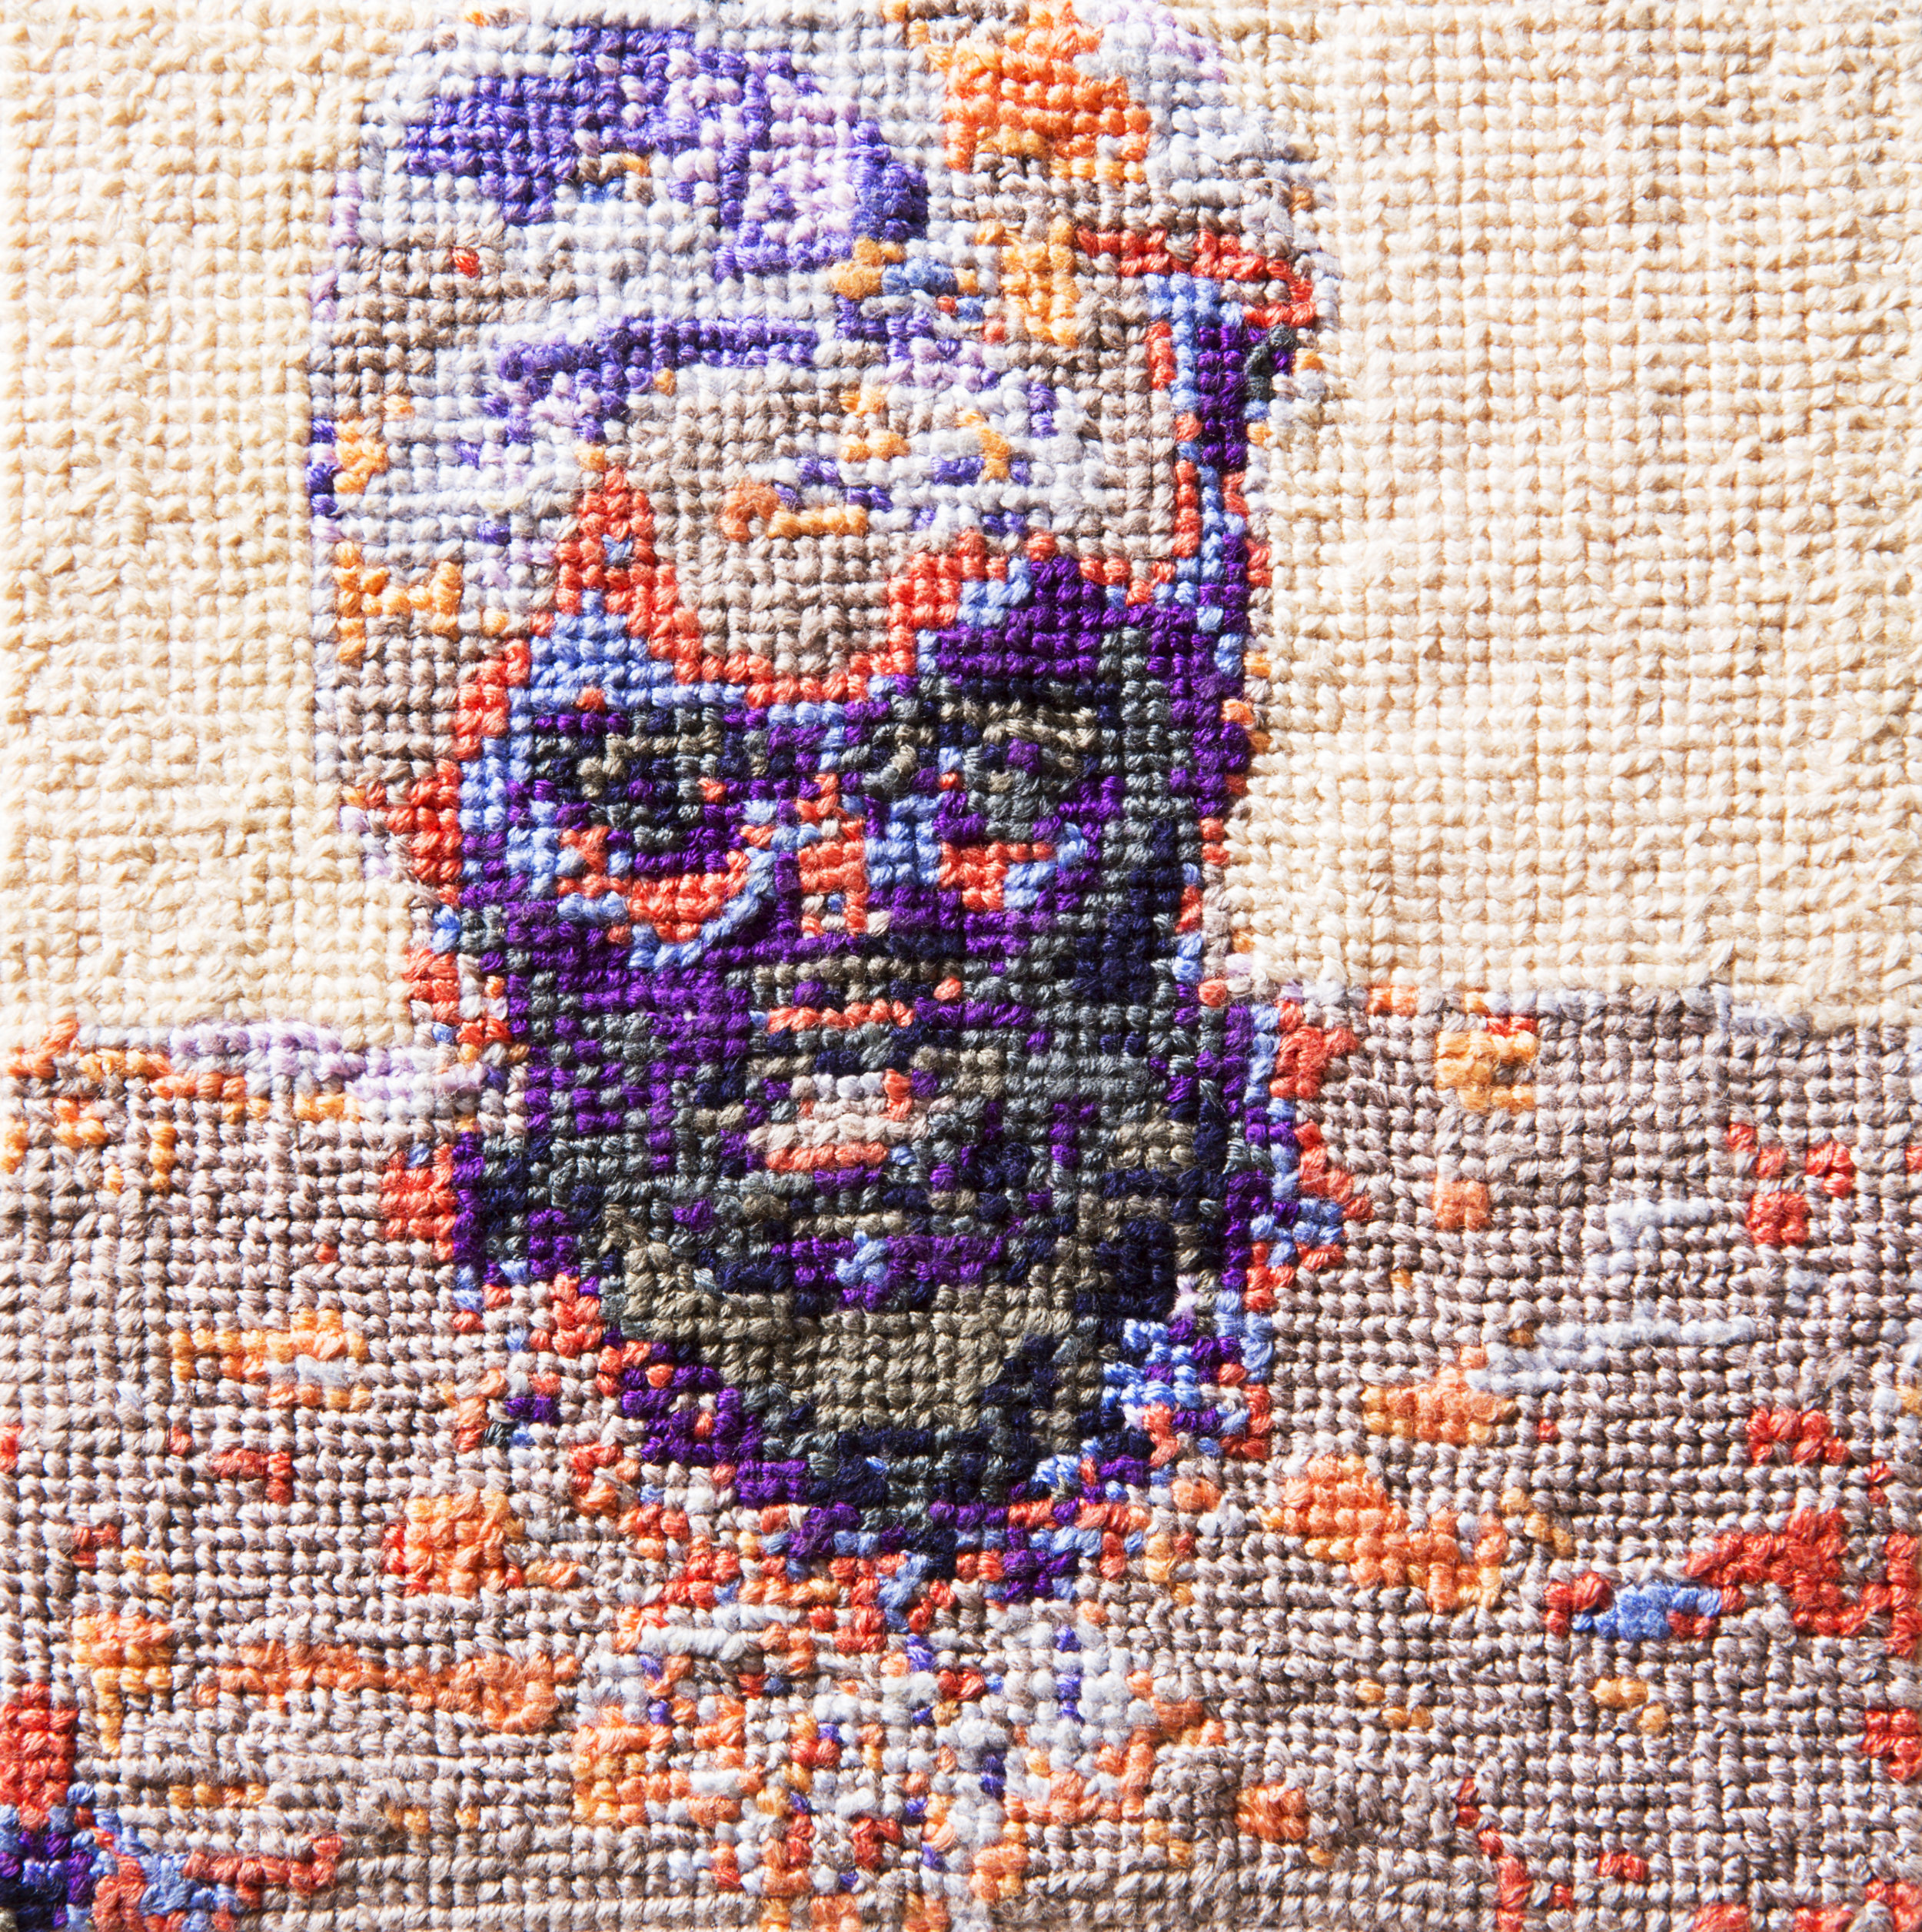 Frame 02   By Romy Aura Maloon  Cotton thread on aida cloth  5 x 5 inches  2013